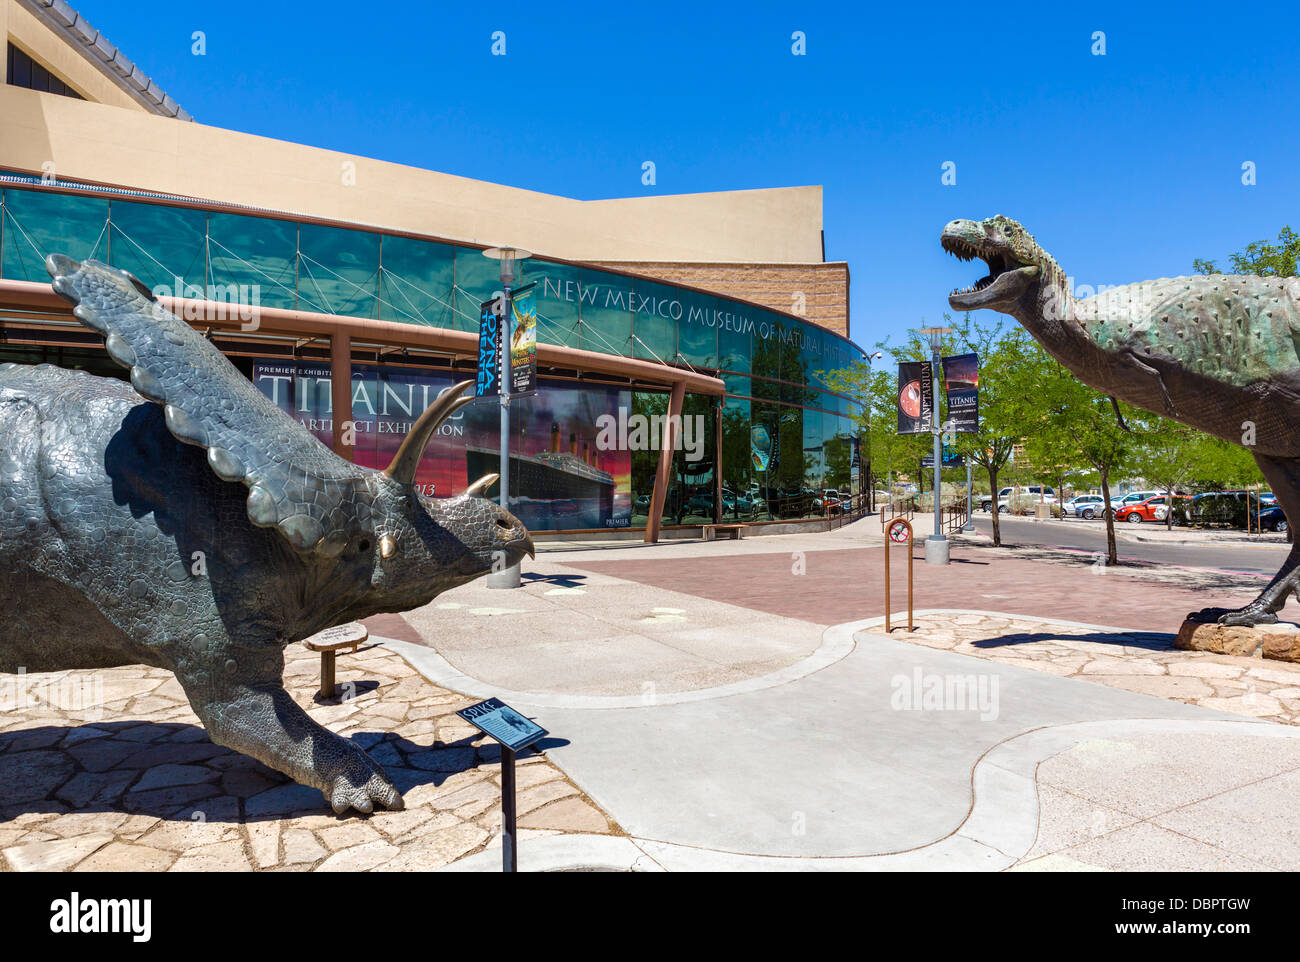 New Mexico Museum of Natural History and Science, Albuquerque, New Mexico, USA Photo Stock